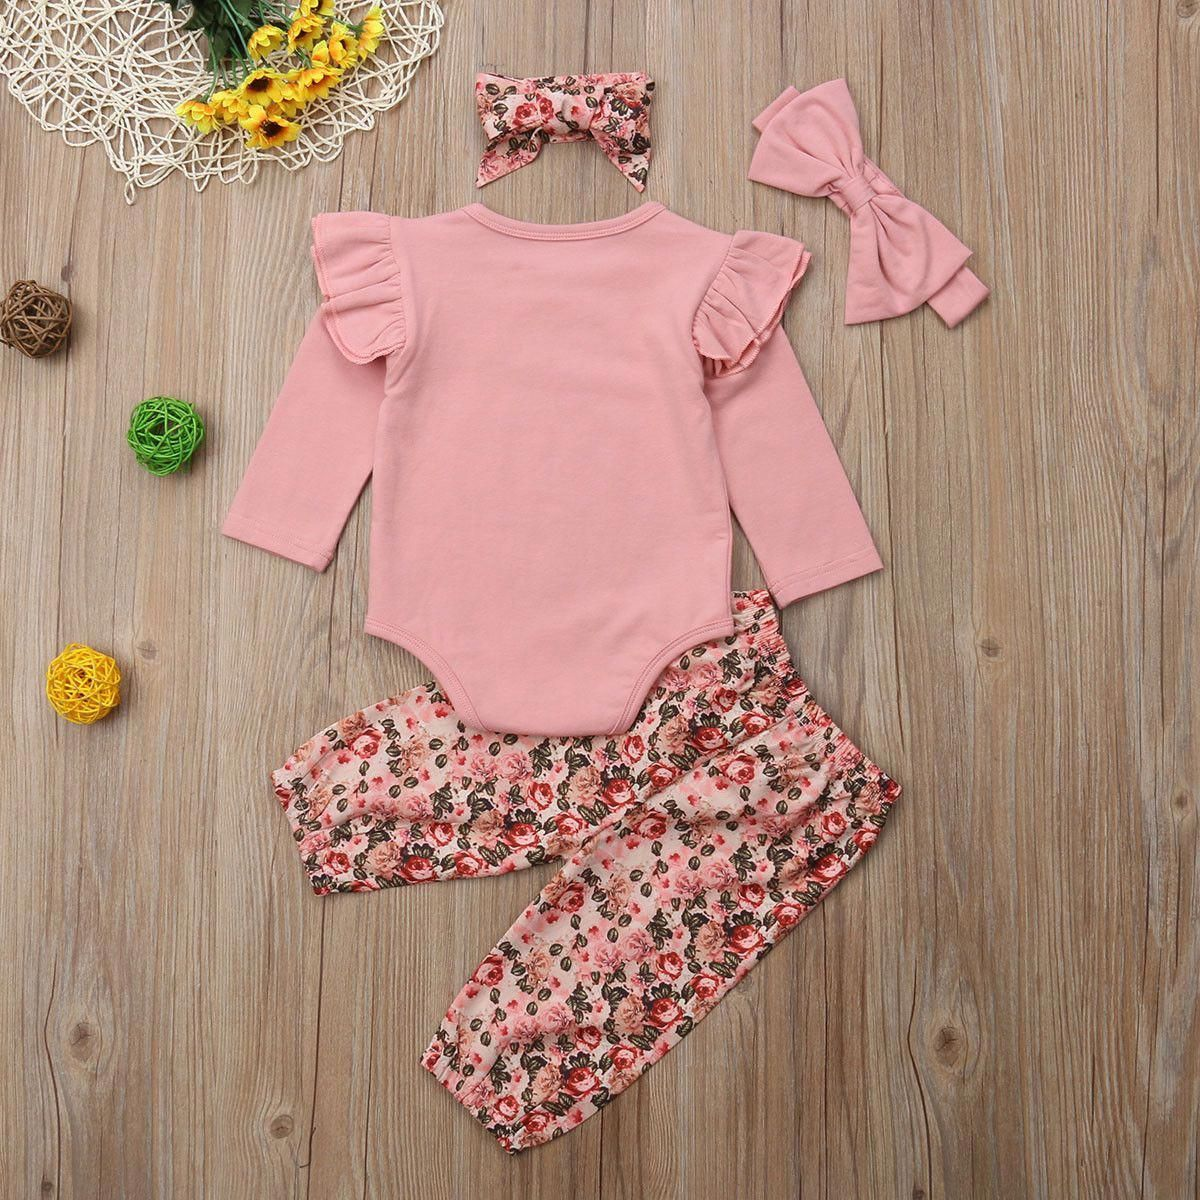 Infant Designer Clothes  Cute Newborn Girl Clothes  Baby Clothes